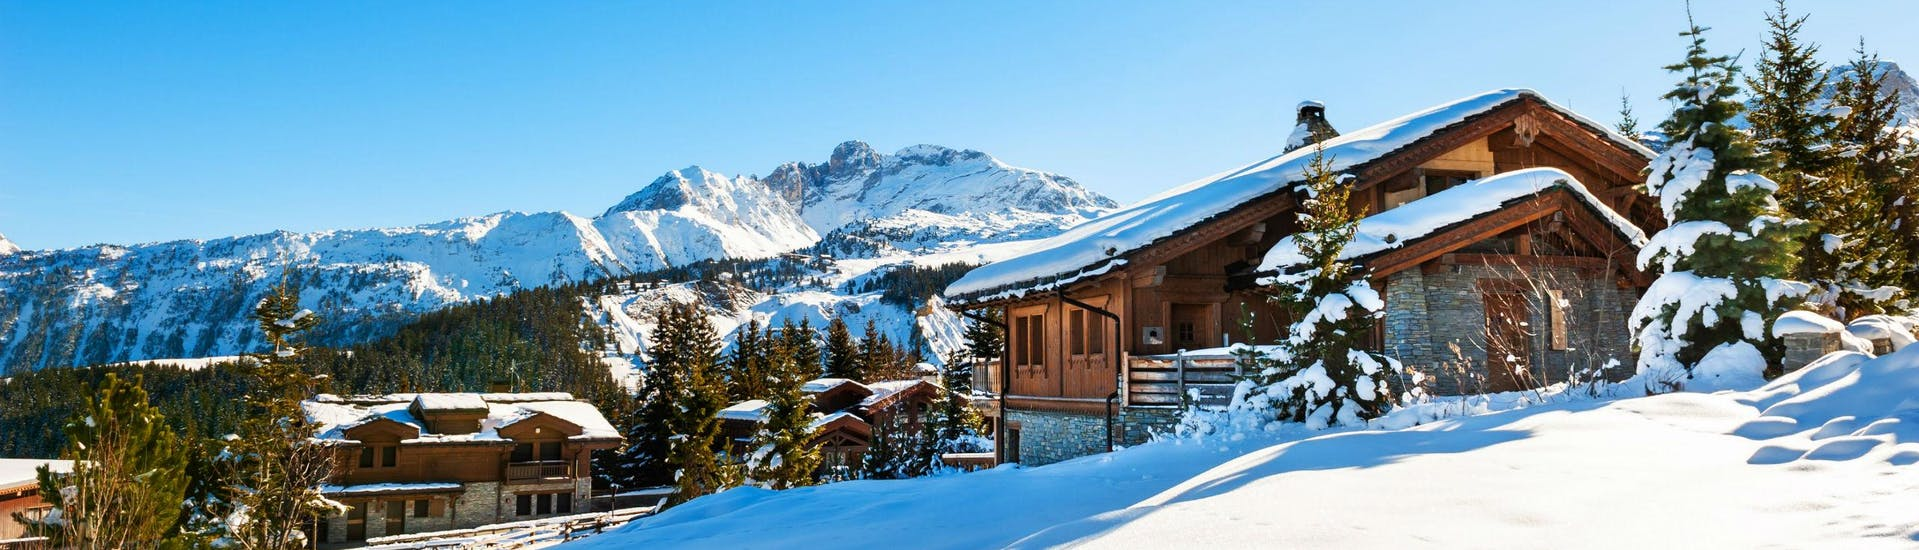 An image of a couple of snow-covered mountain huts in the popular French ski resort of Courchevel, where visitors can learn to ski in one of the many ski lessons organised by the local ski schools.